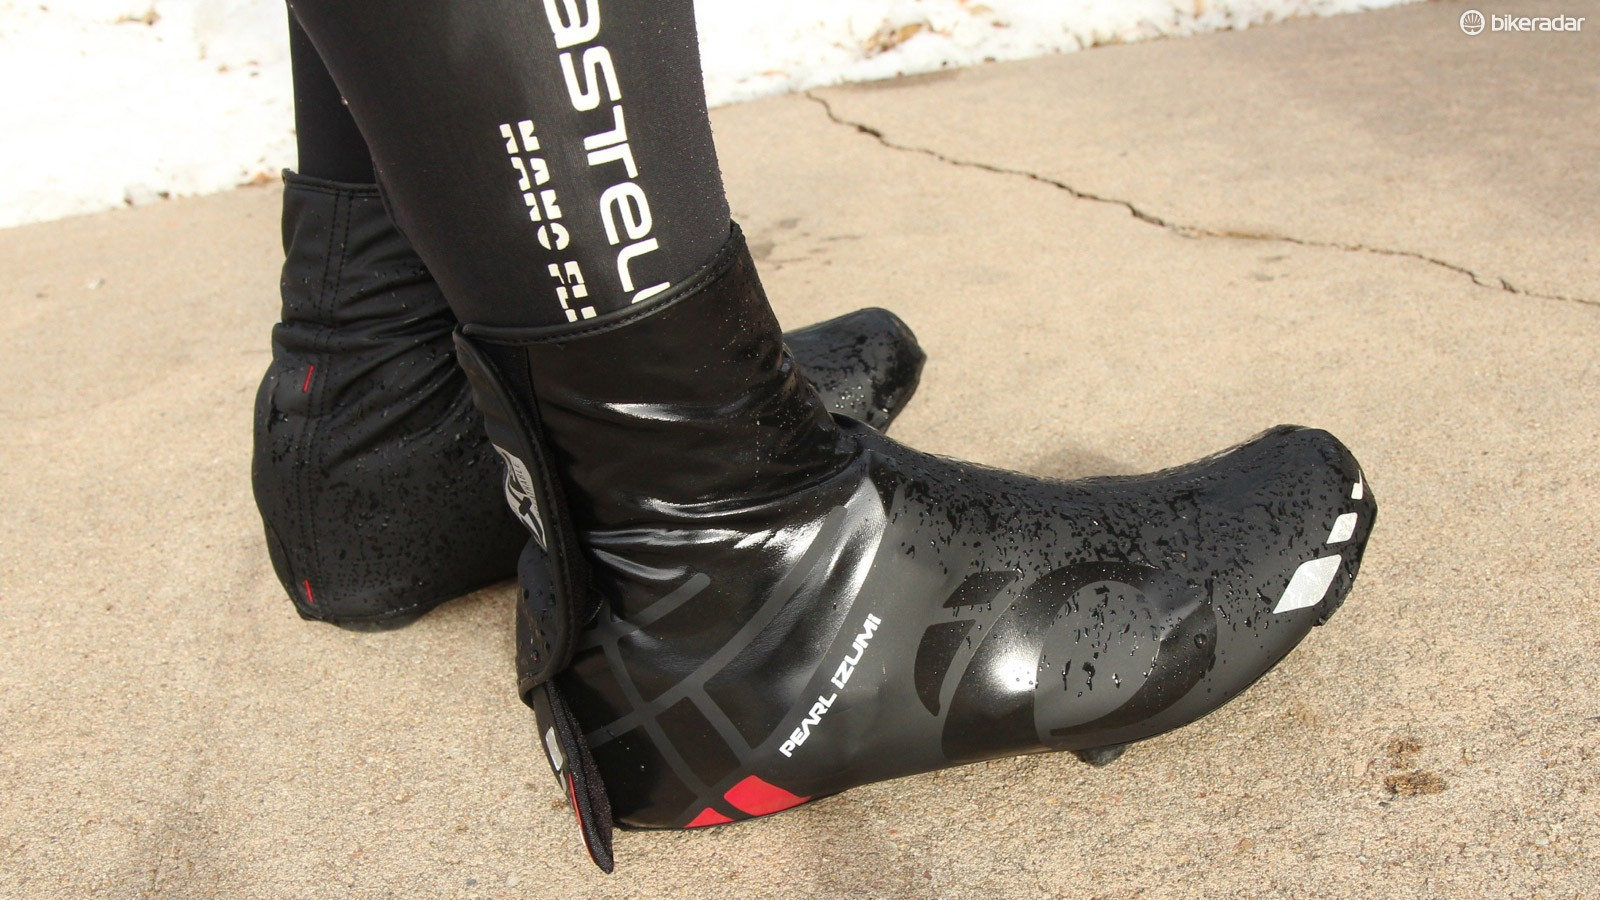 The WxB Barrier is waterproof and stretchy, with a thin fleece liner